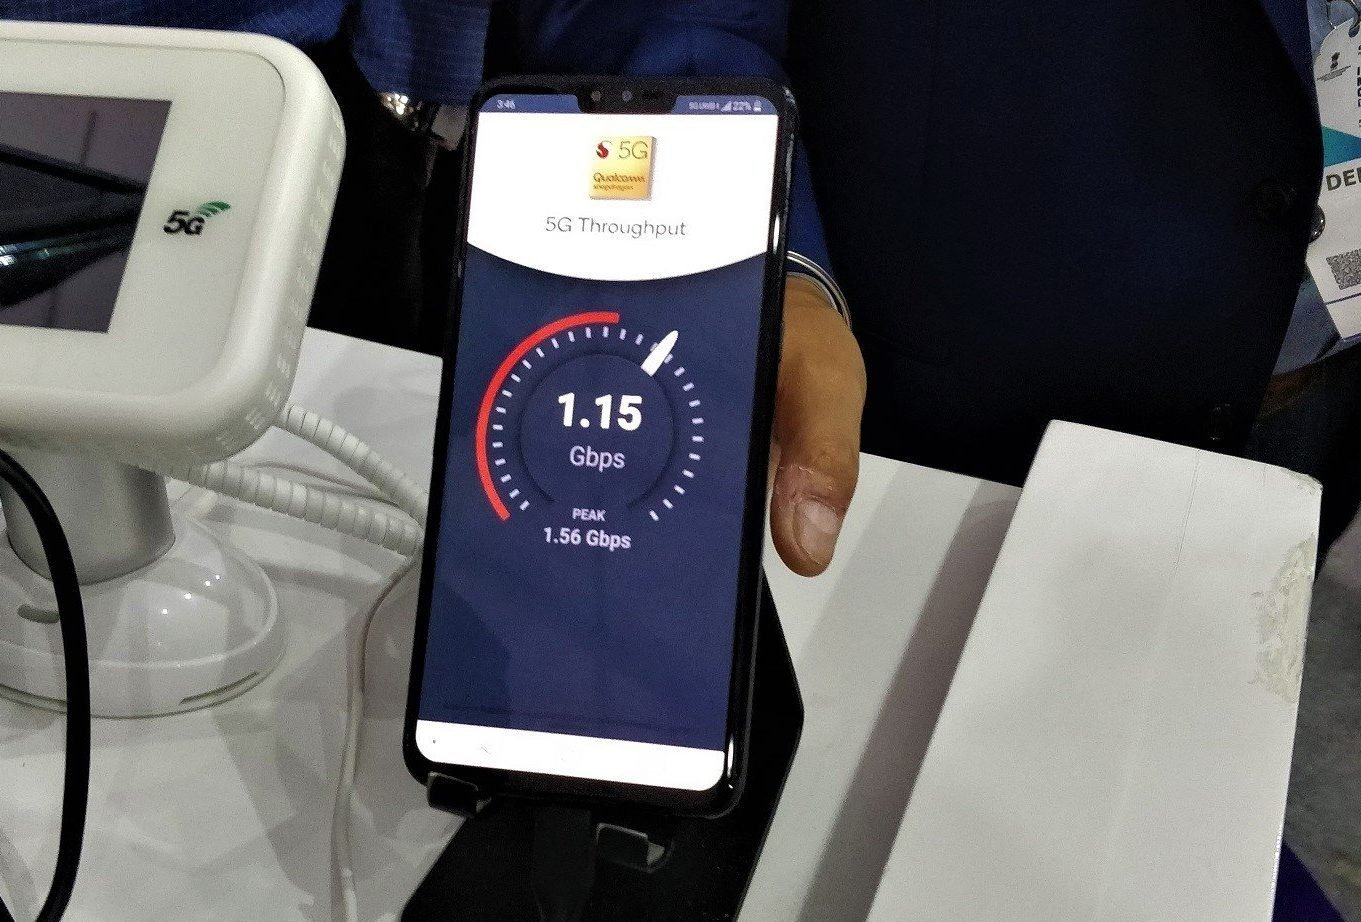 Consumers Willing to Spend 20% More on 5G Smartphones